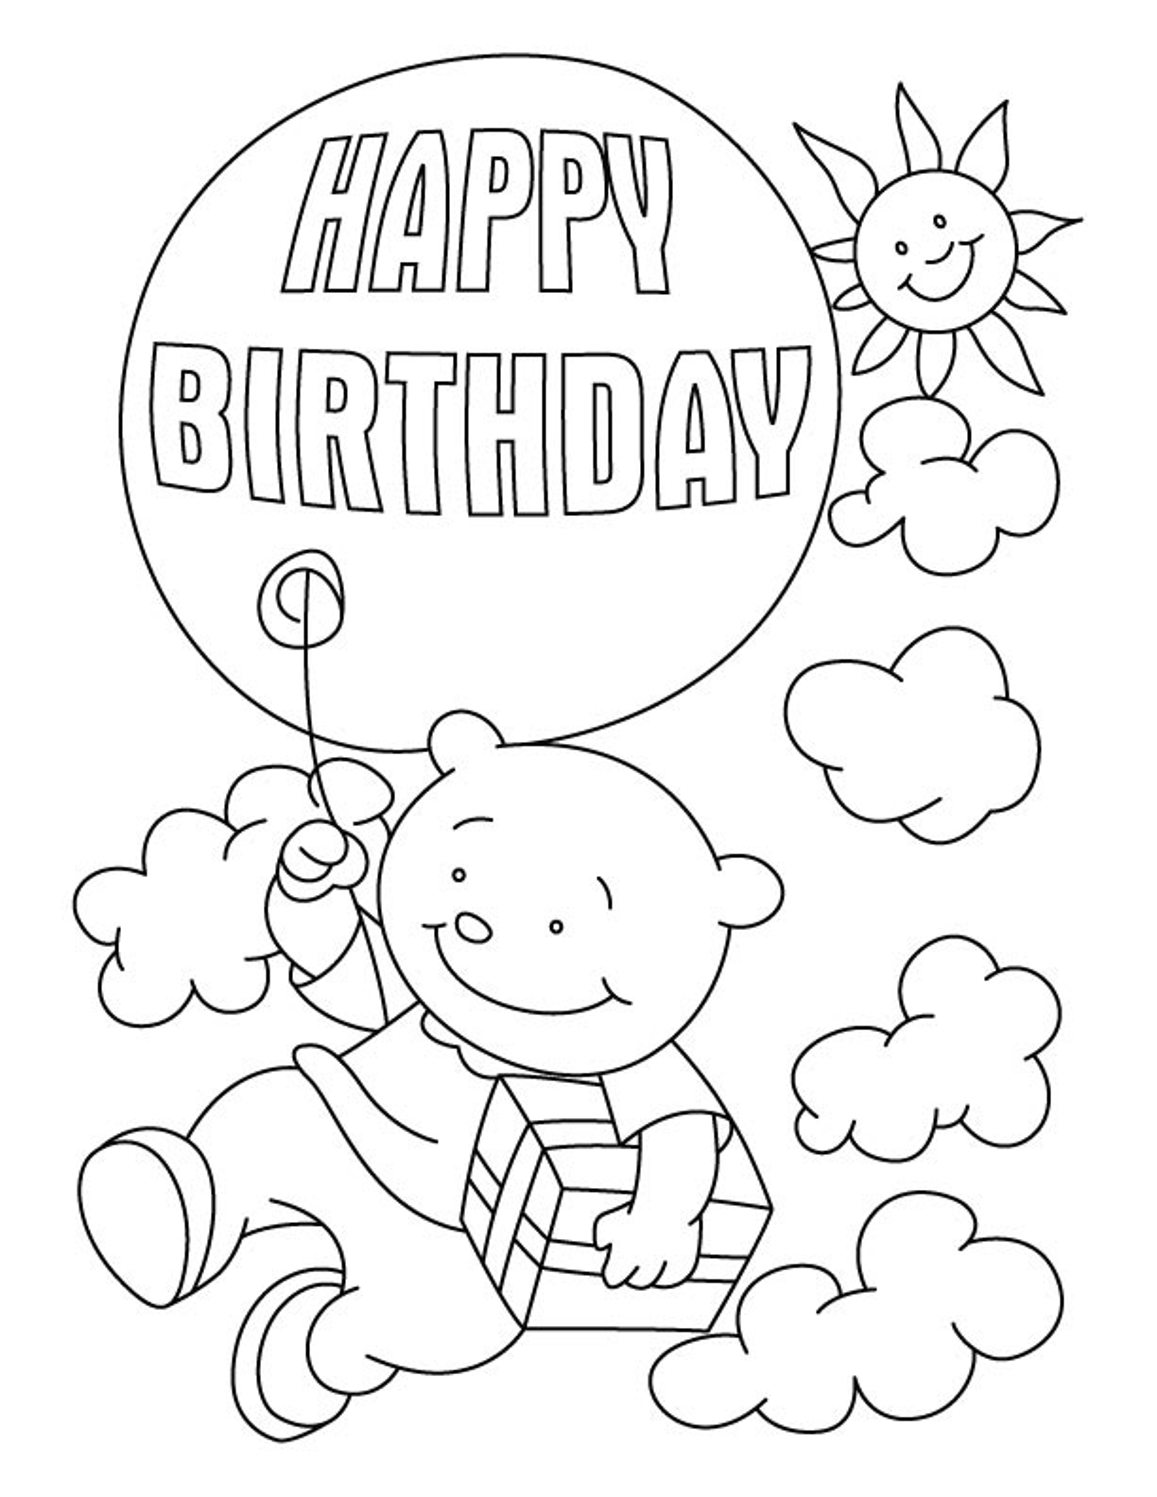 free printable coloring birthday cards birthday card with pictures cat cupcake coloring pages coloring cards birthday printable free